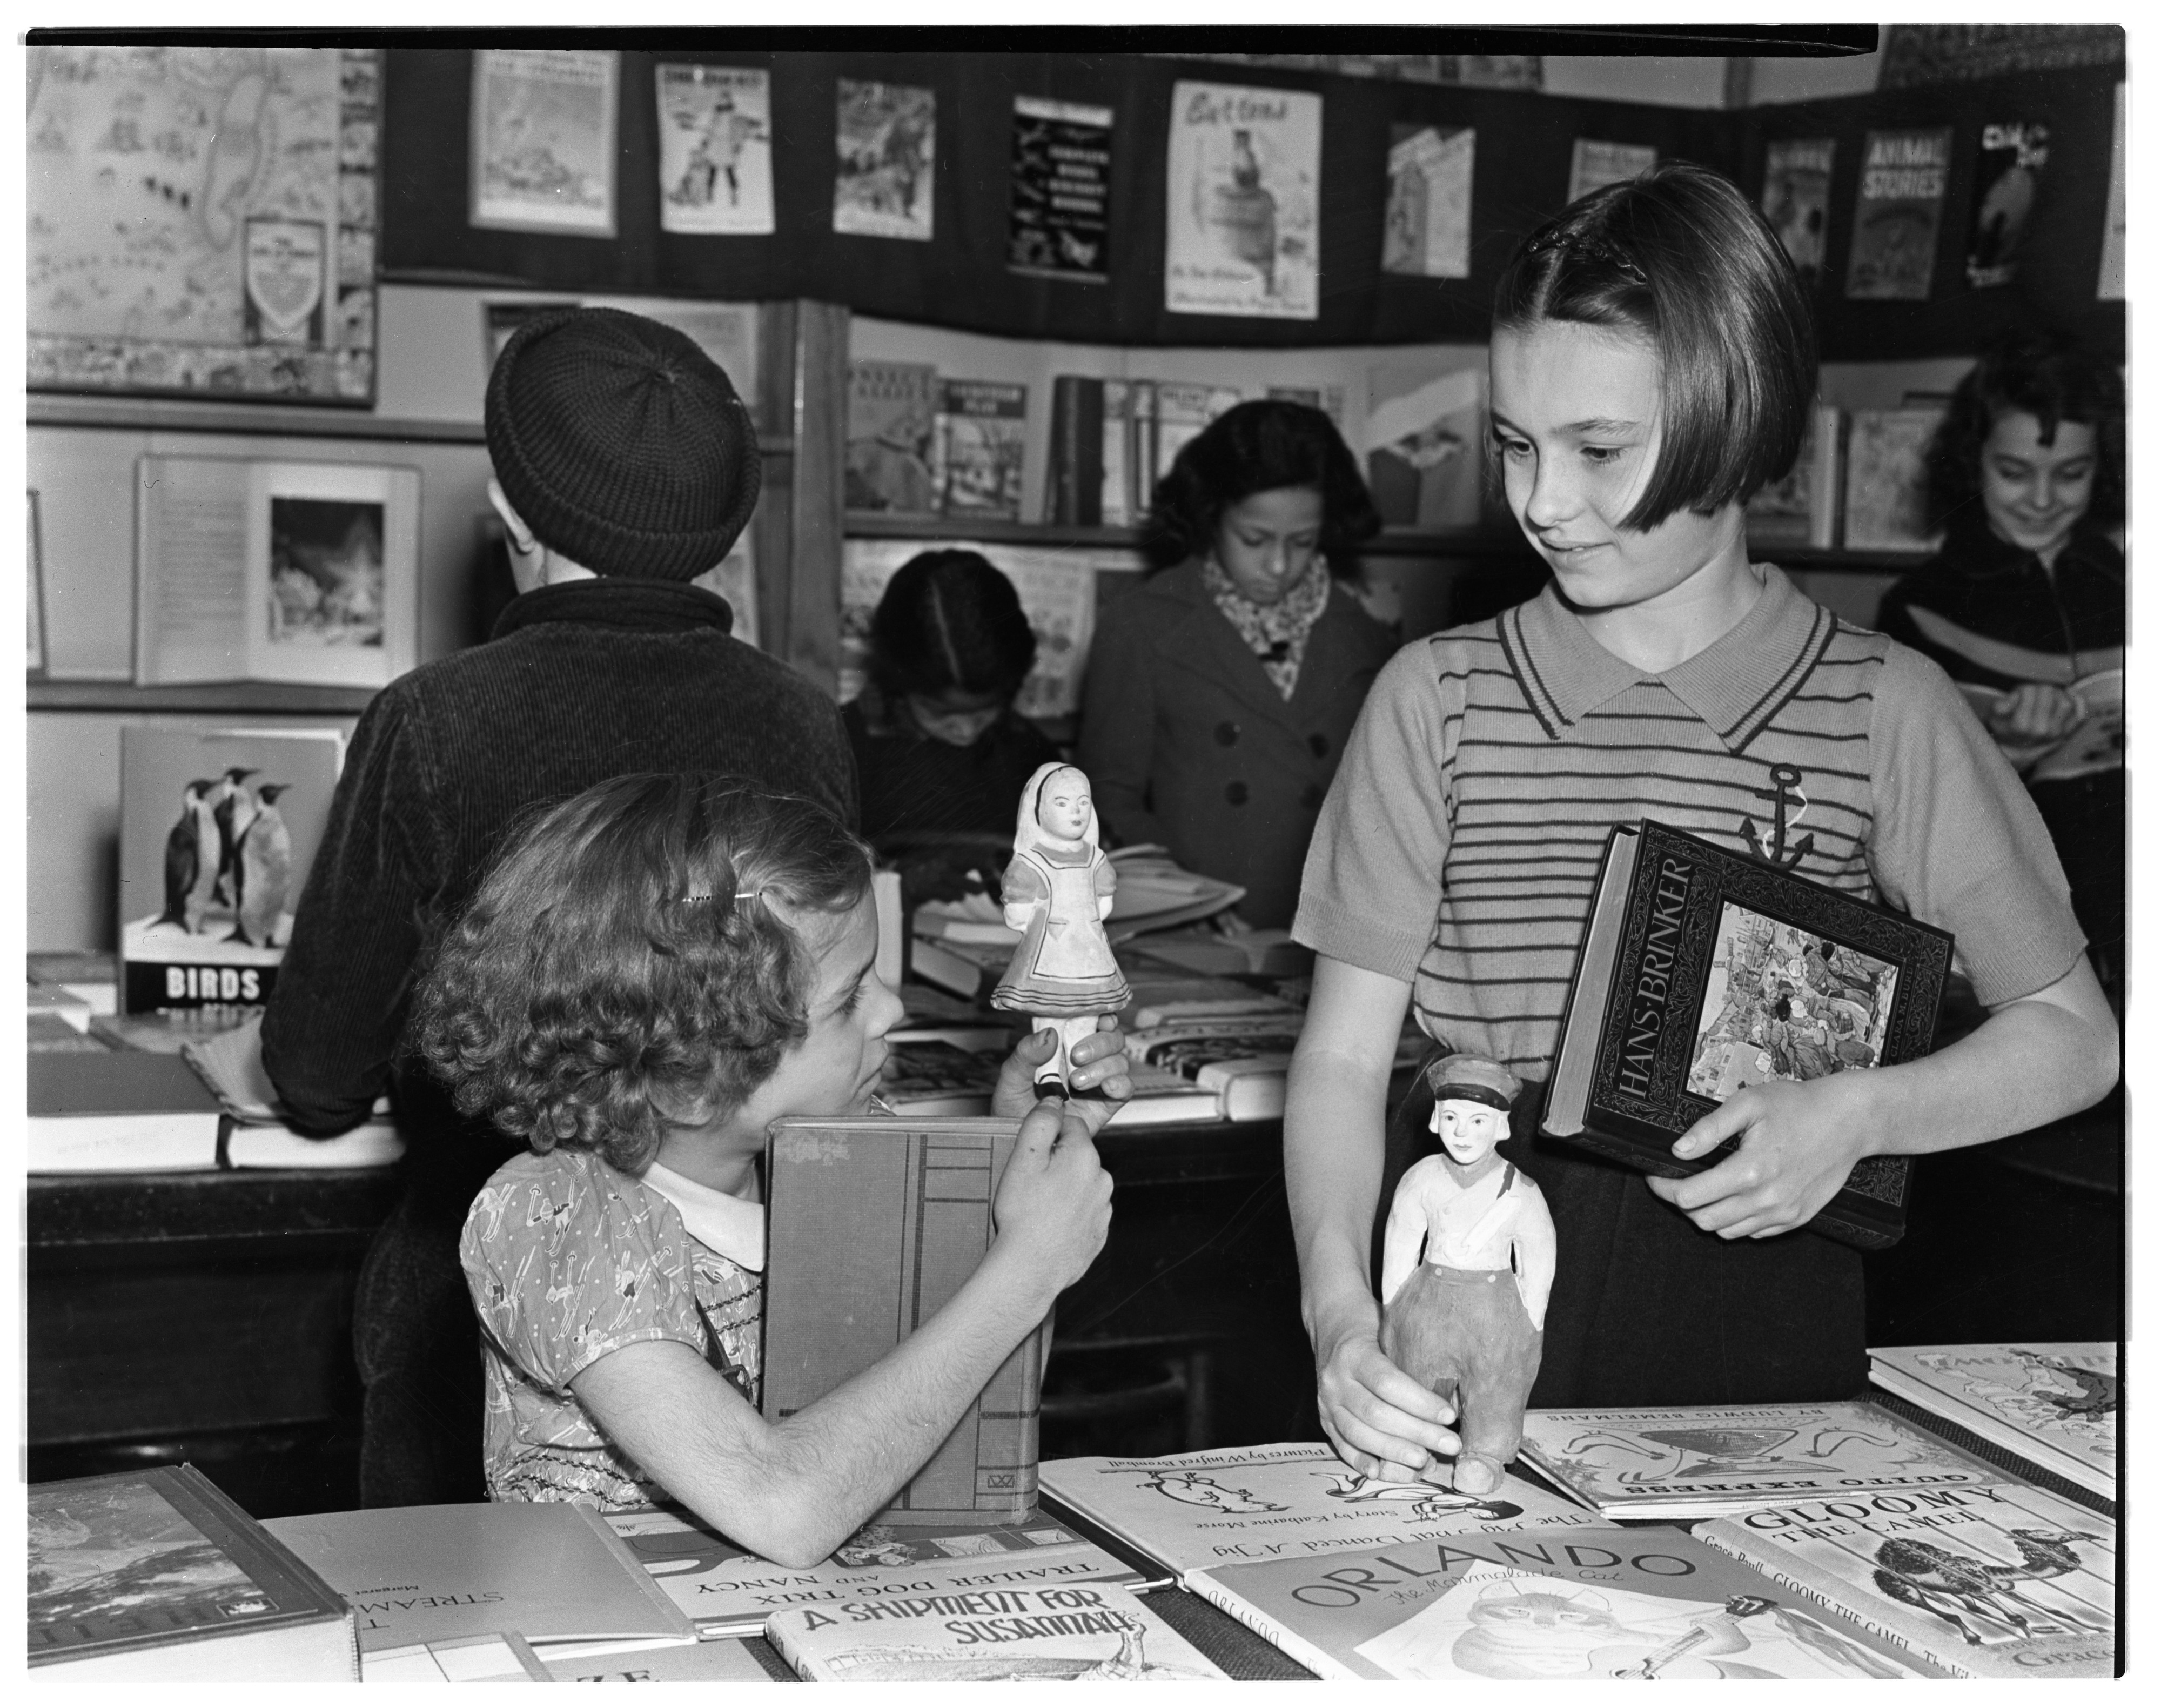 Children's Book Display At The Ann Arbor Public Library, National Book Week, November 1938 image